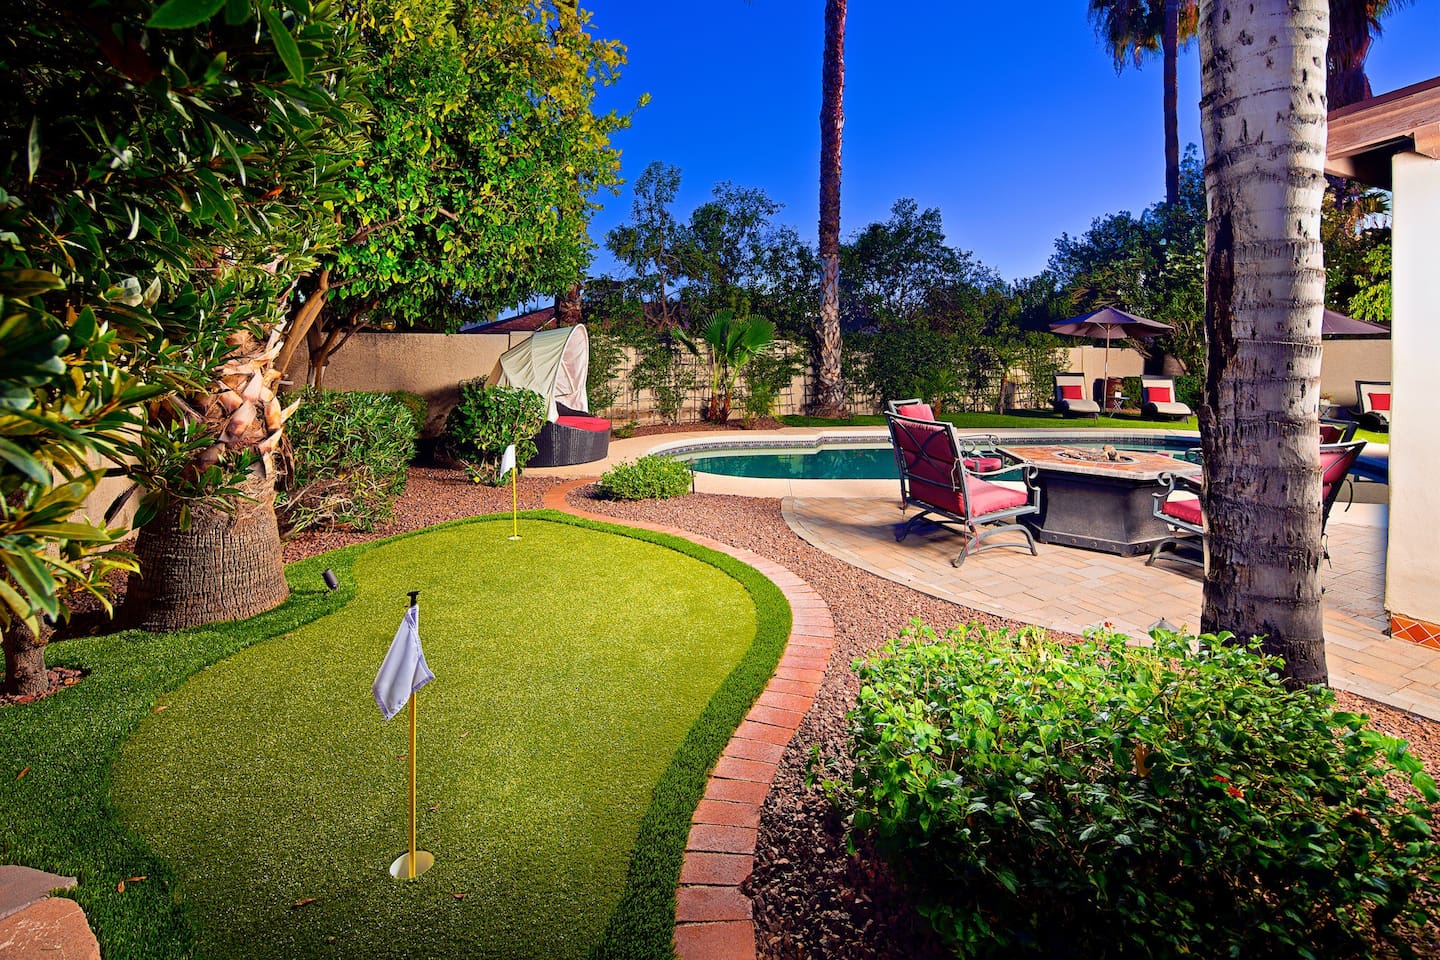 Relax in your private backyard with heated pool, fire pit, and putting green.